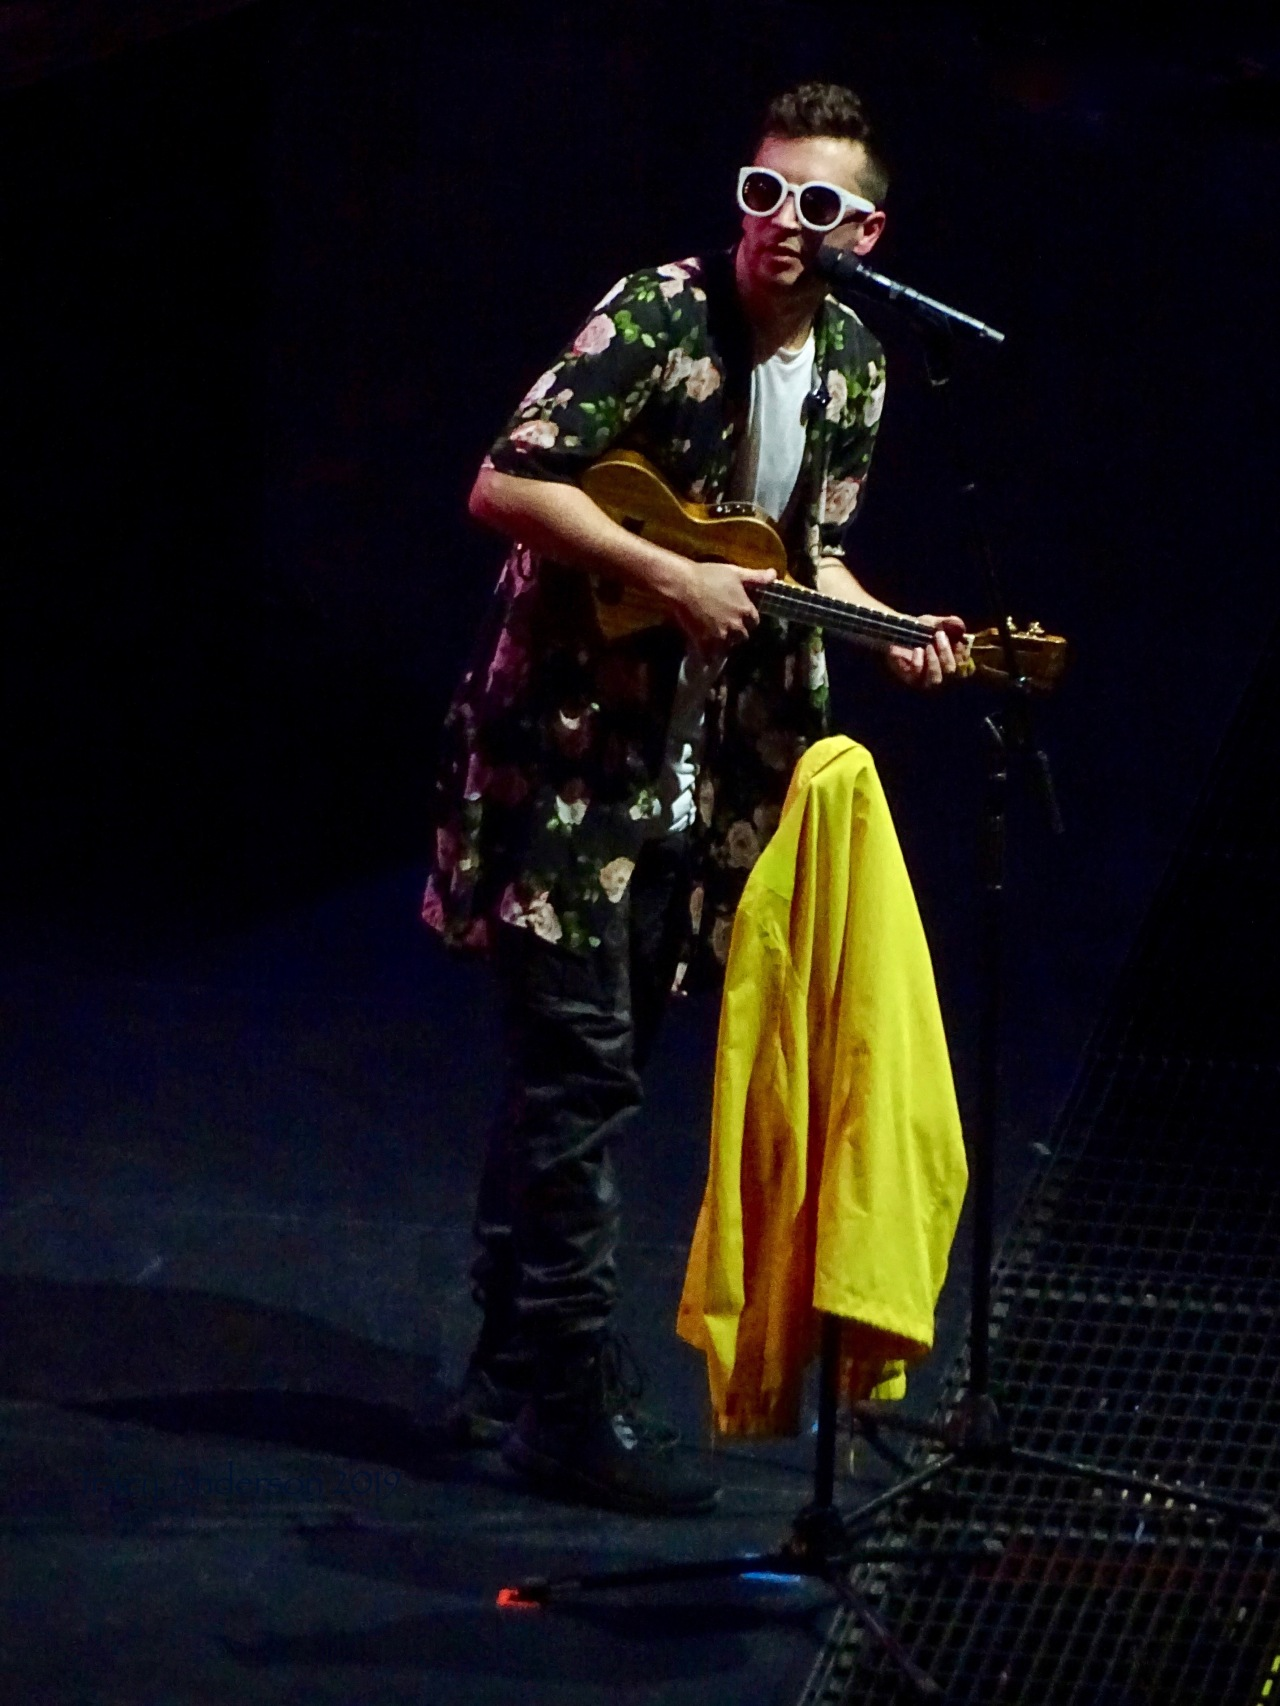 Tyler Joseph Ukulele Twenty One Pilots Scotiabank Saddledome Calgary May 14 2019